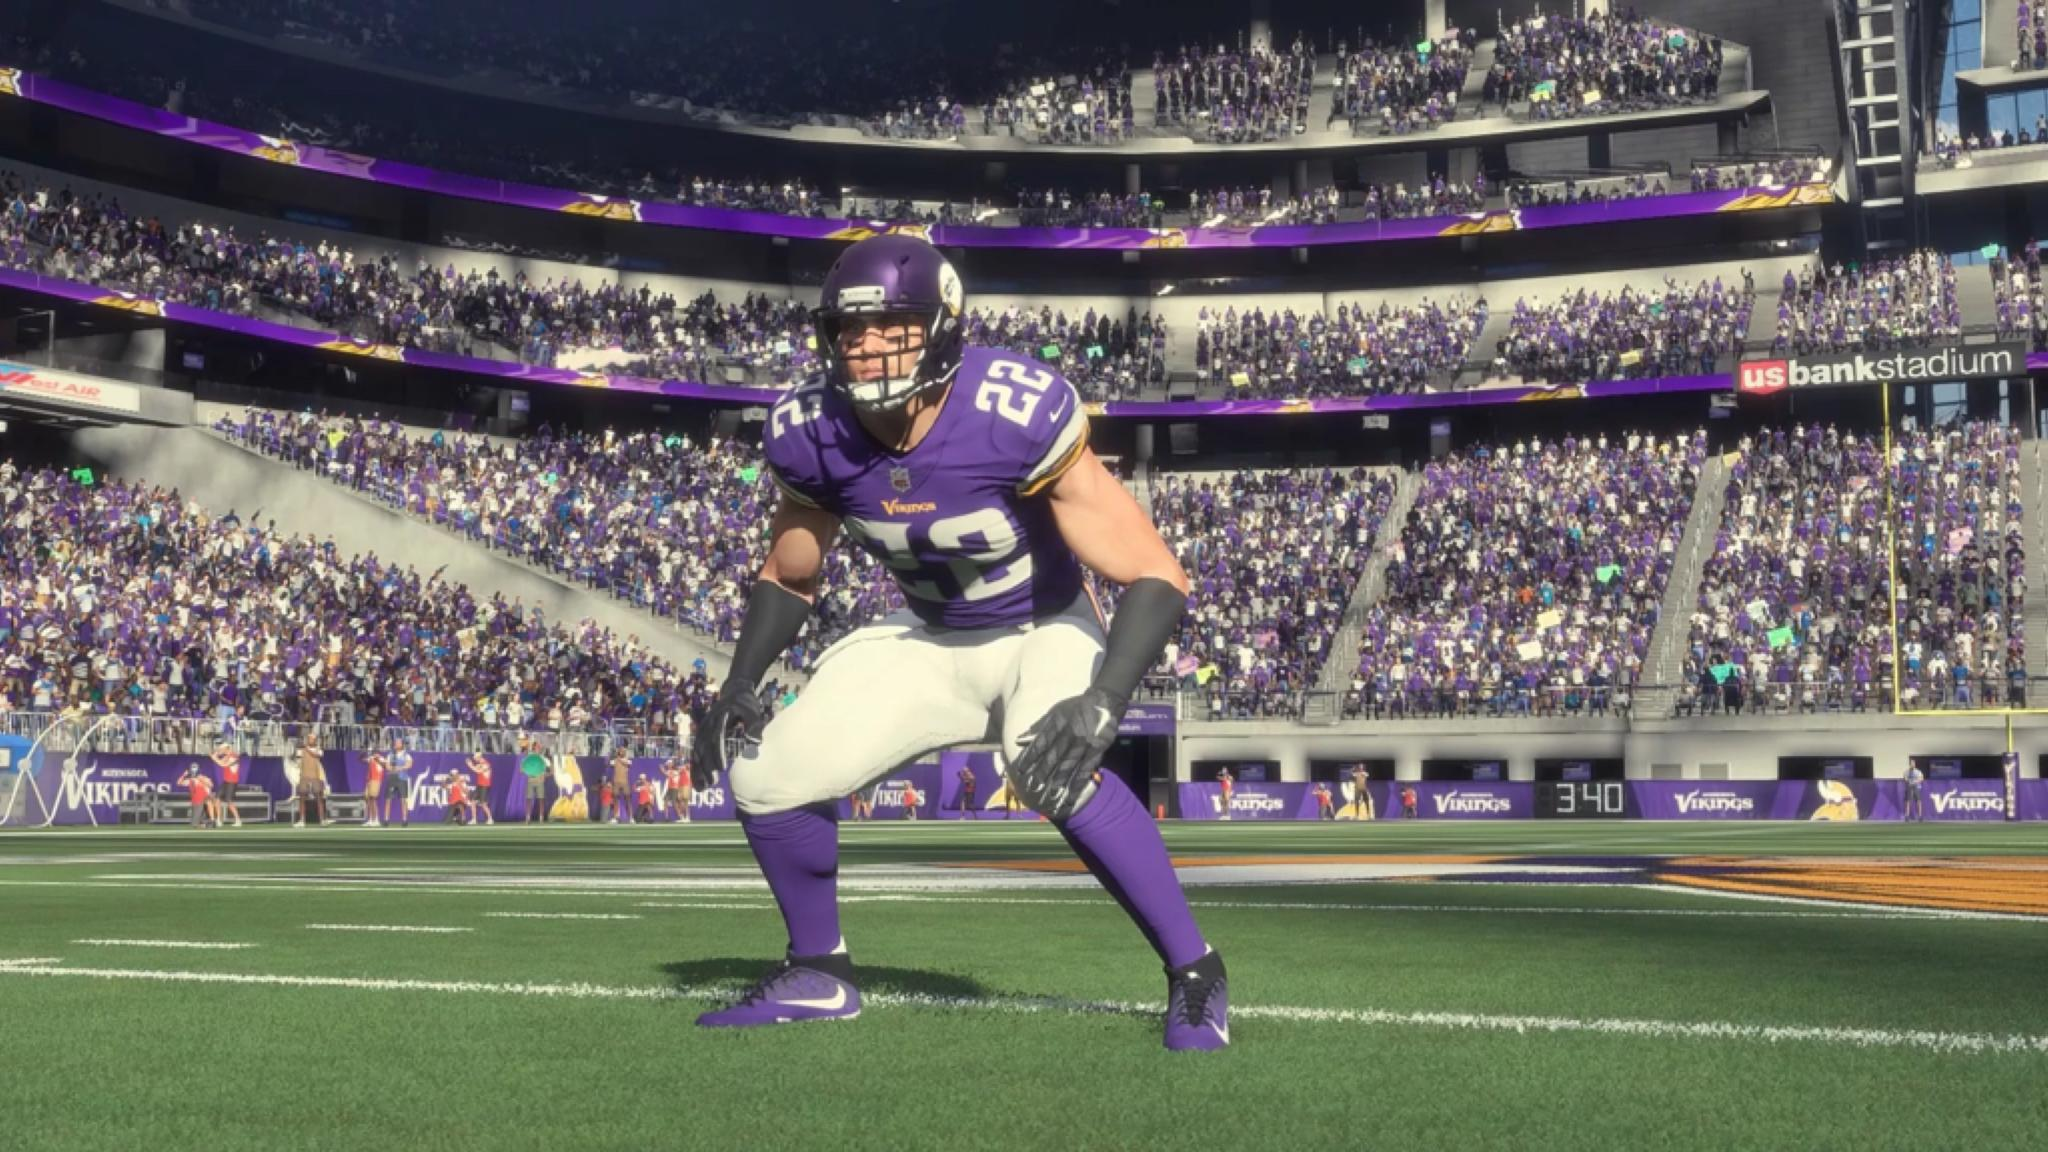 .@HarriSmith22 (97 overall) is the top-rated Viking in #Madden19.   ��: https://t.co/nBIa76QNPN https://t.co/Zrs3CaZa9n